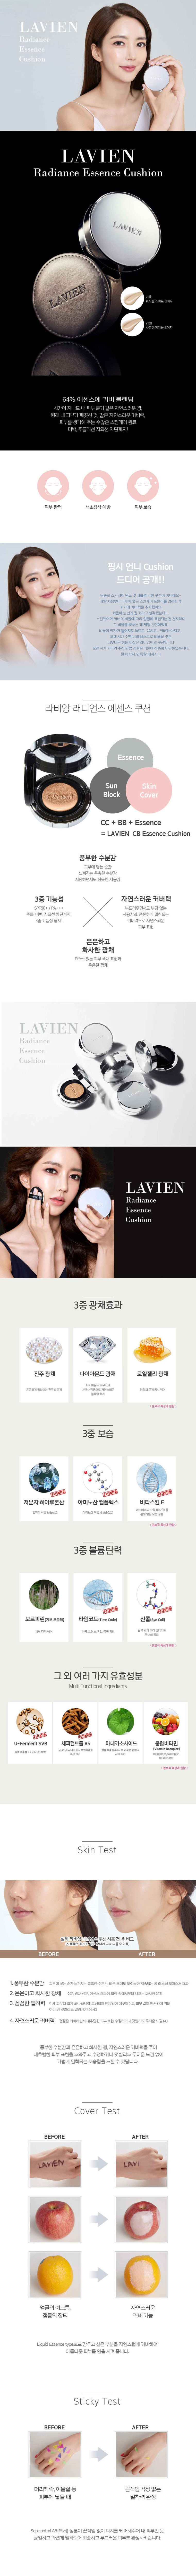 Radiance Essence Cushion - Refill Details